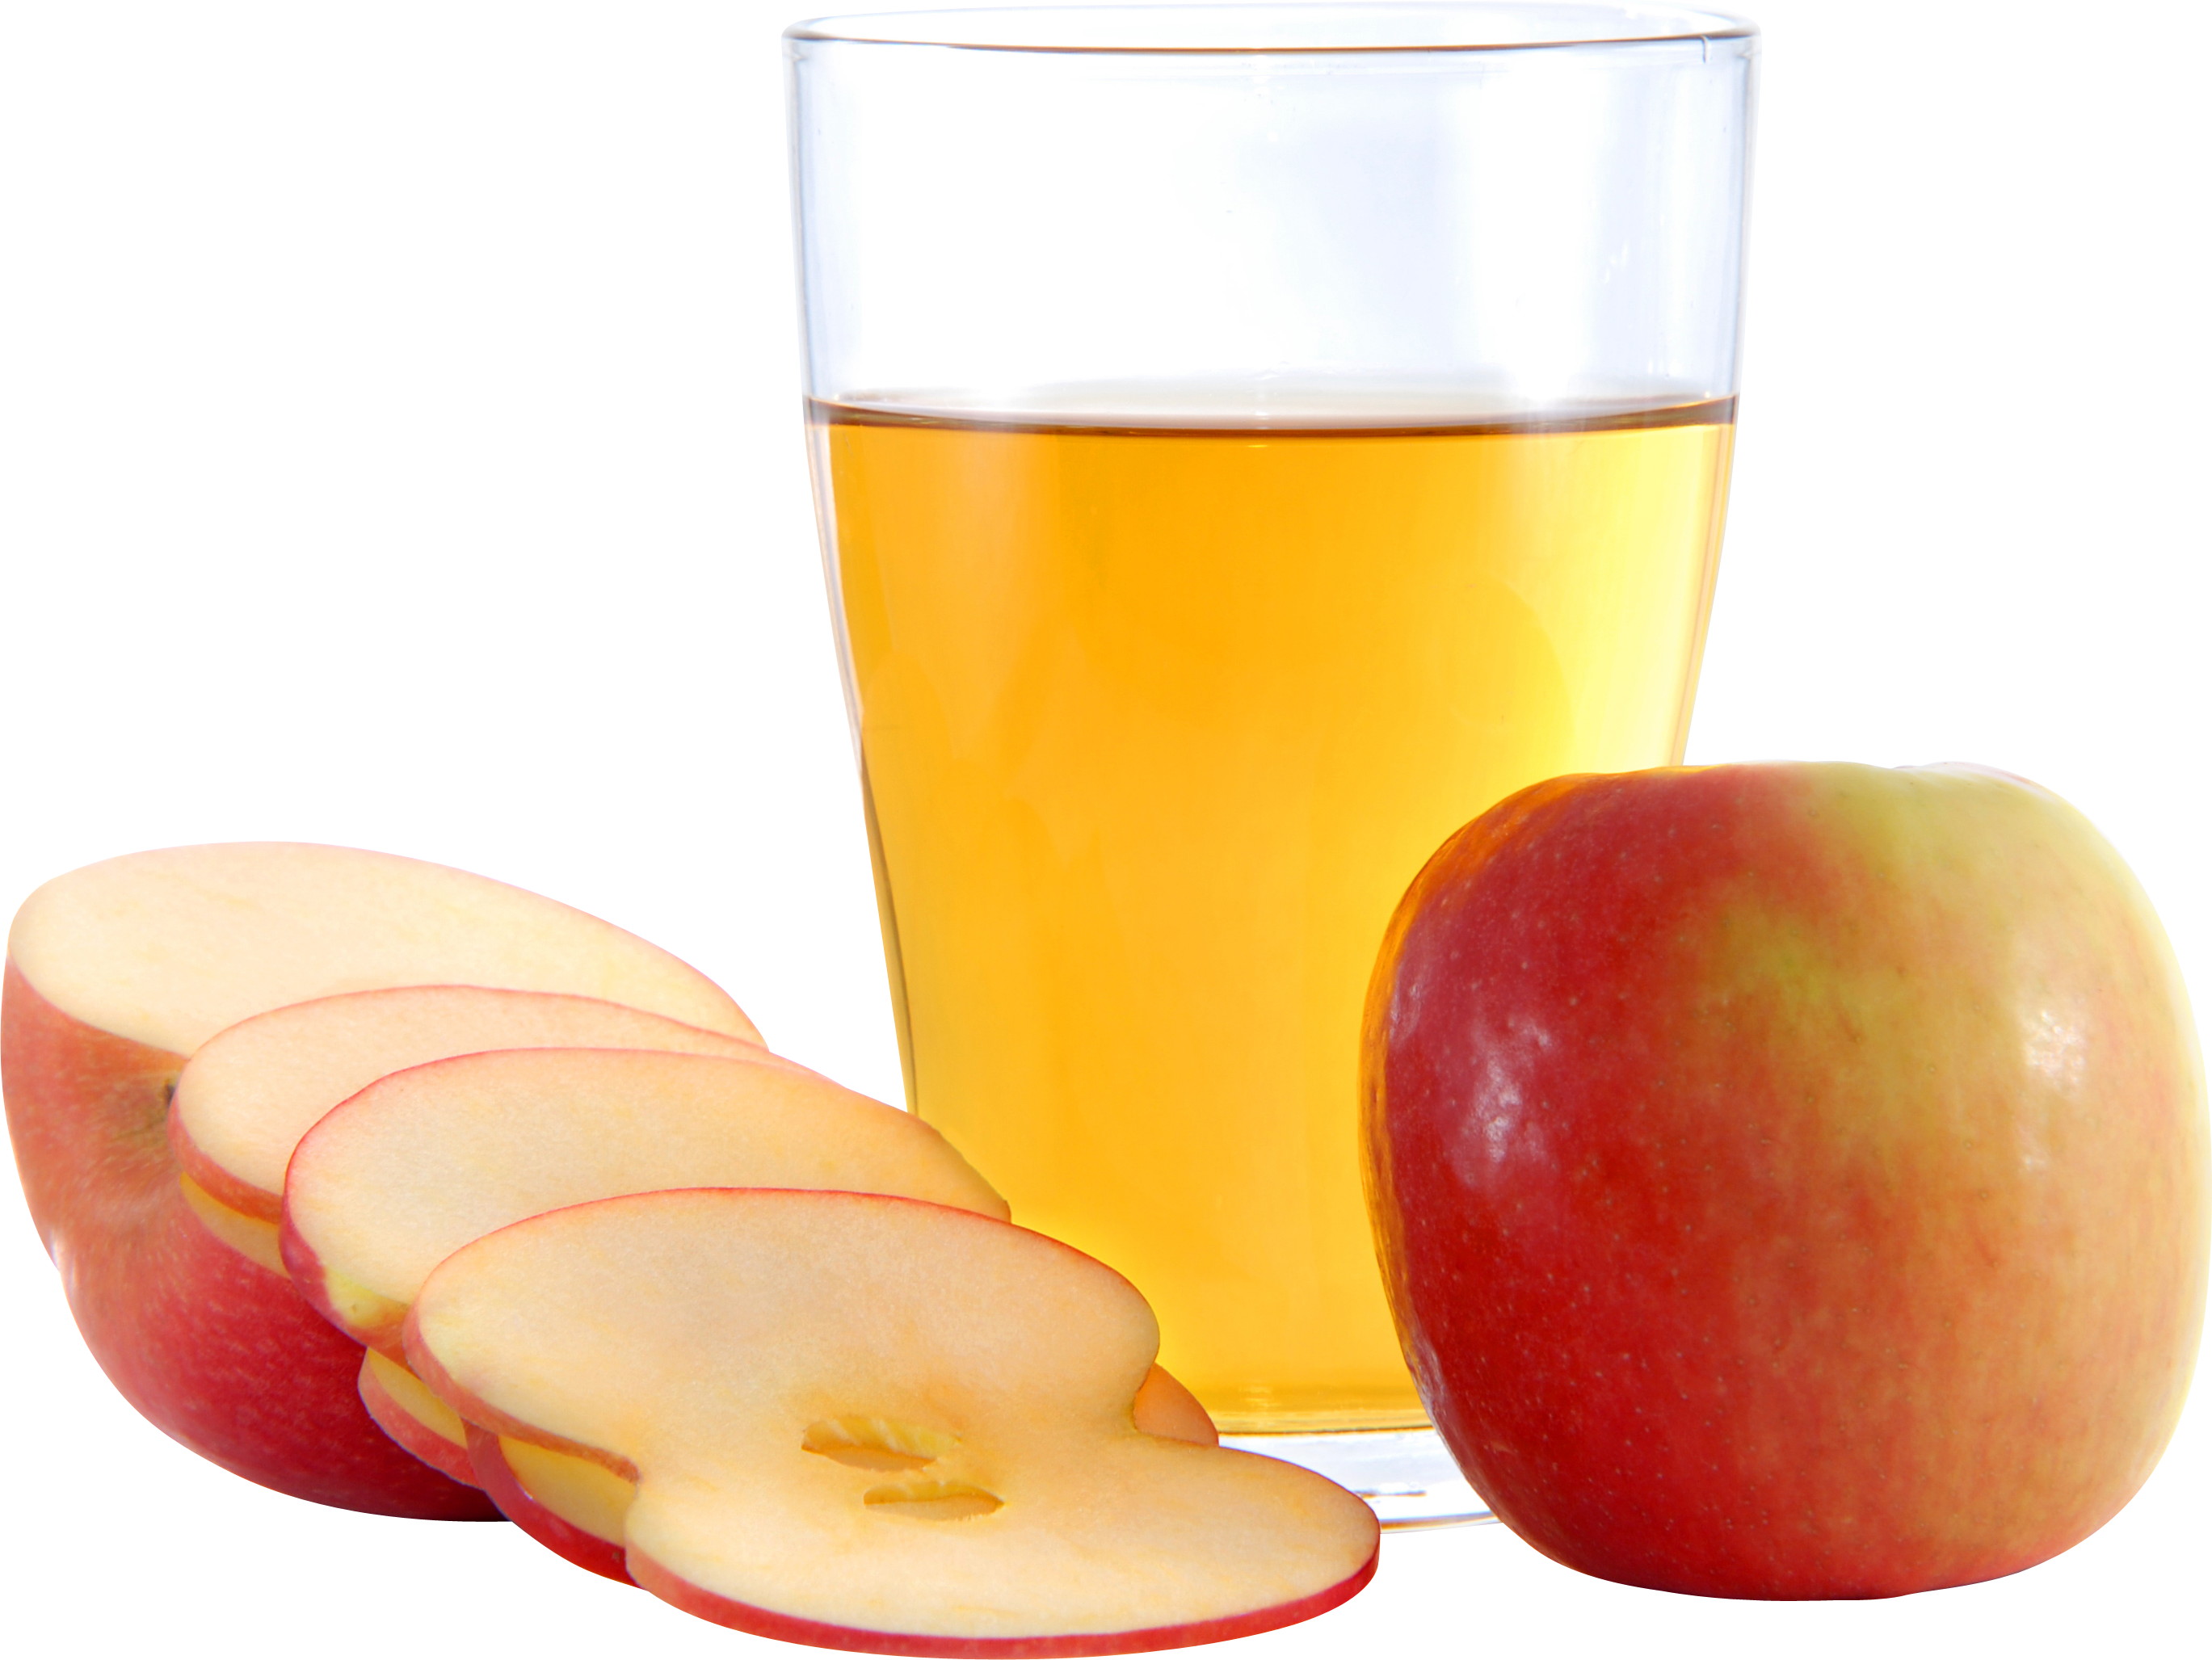 Cup clipart apple juice. Png images free download